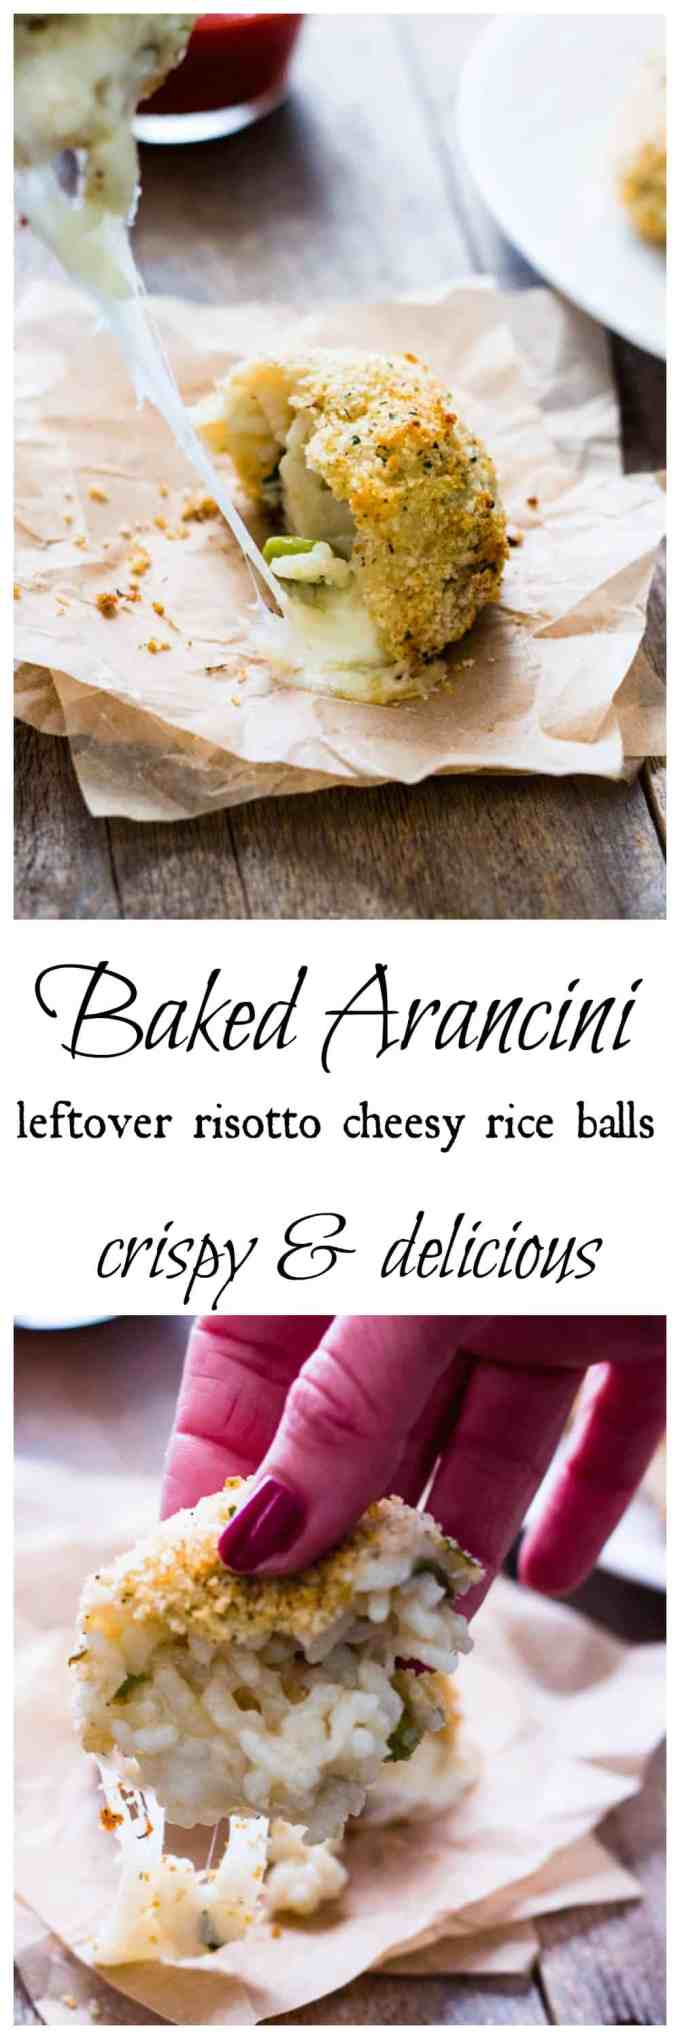 Baked Leftover Risotto Cheesy Rice Balls (arancini) are the perfect baked alternative to traditional arancini. Crispy and delicious, they are a great dish.